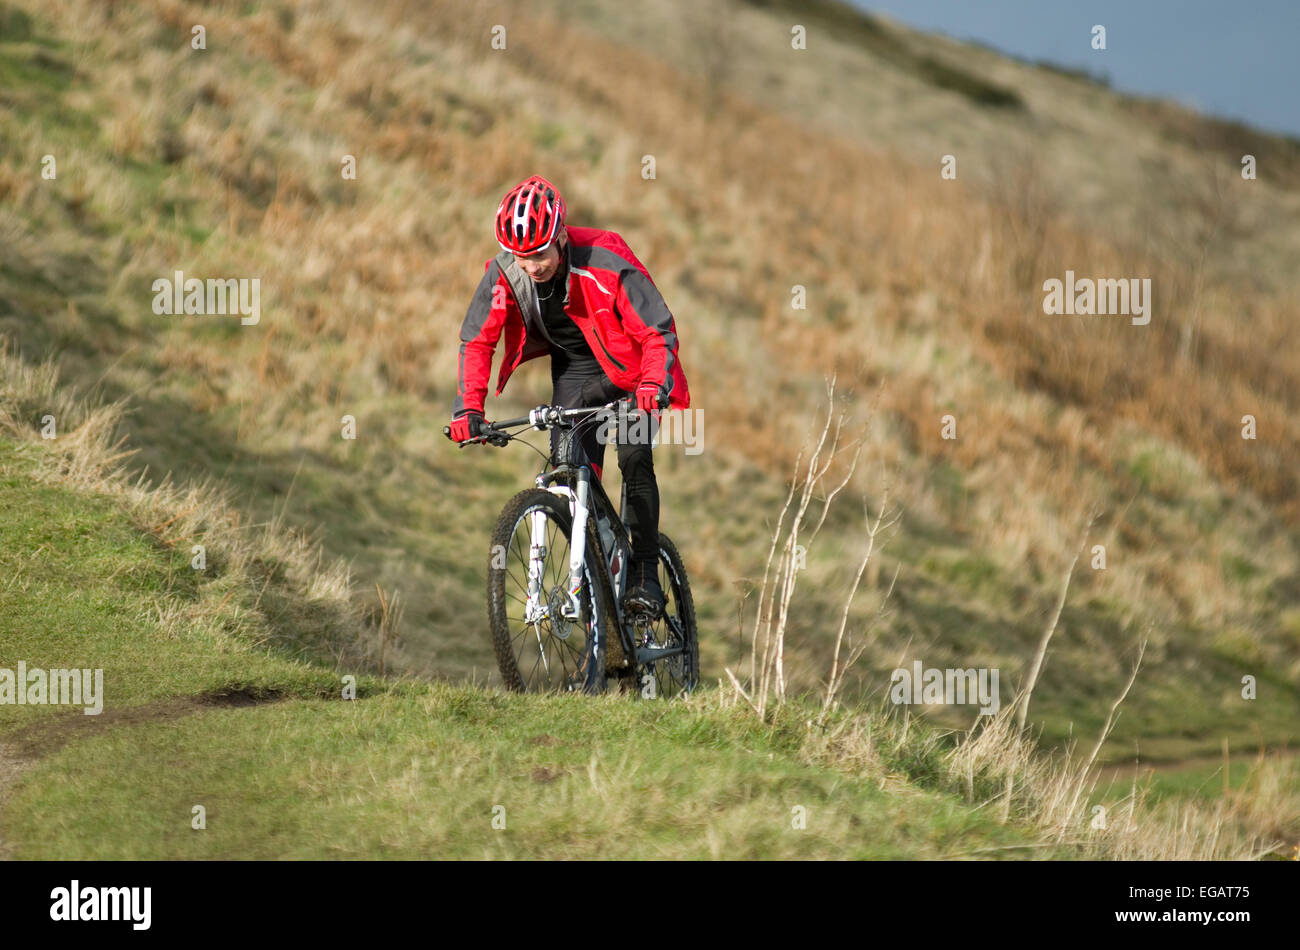 mountain-biker-in-red-coat-and-helmet-on